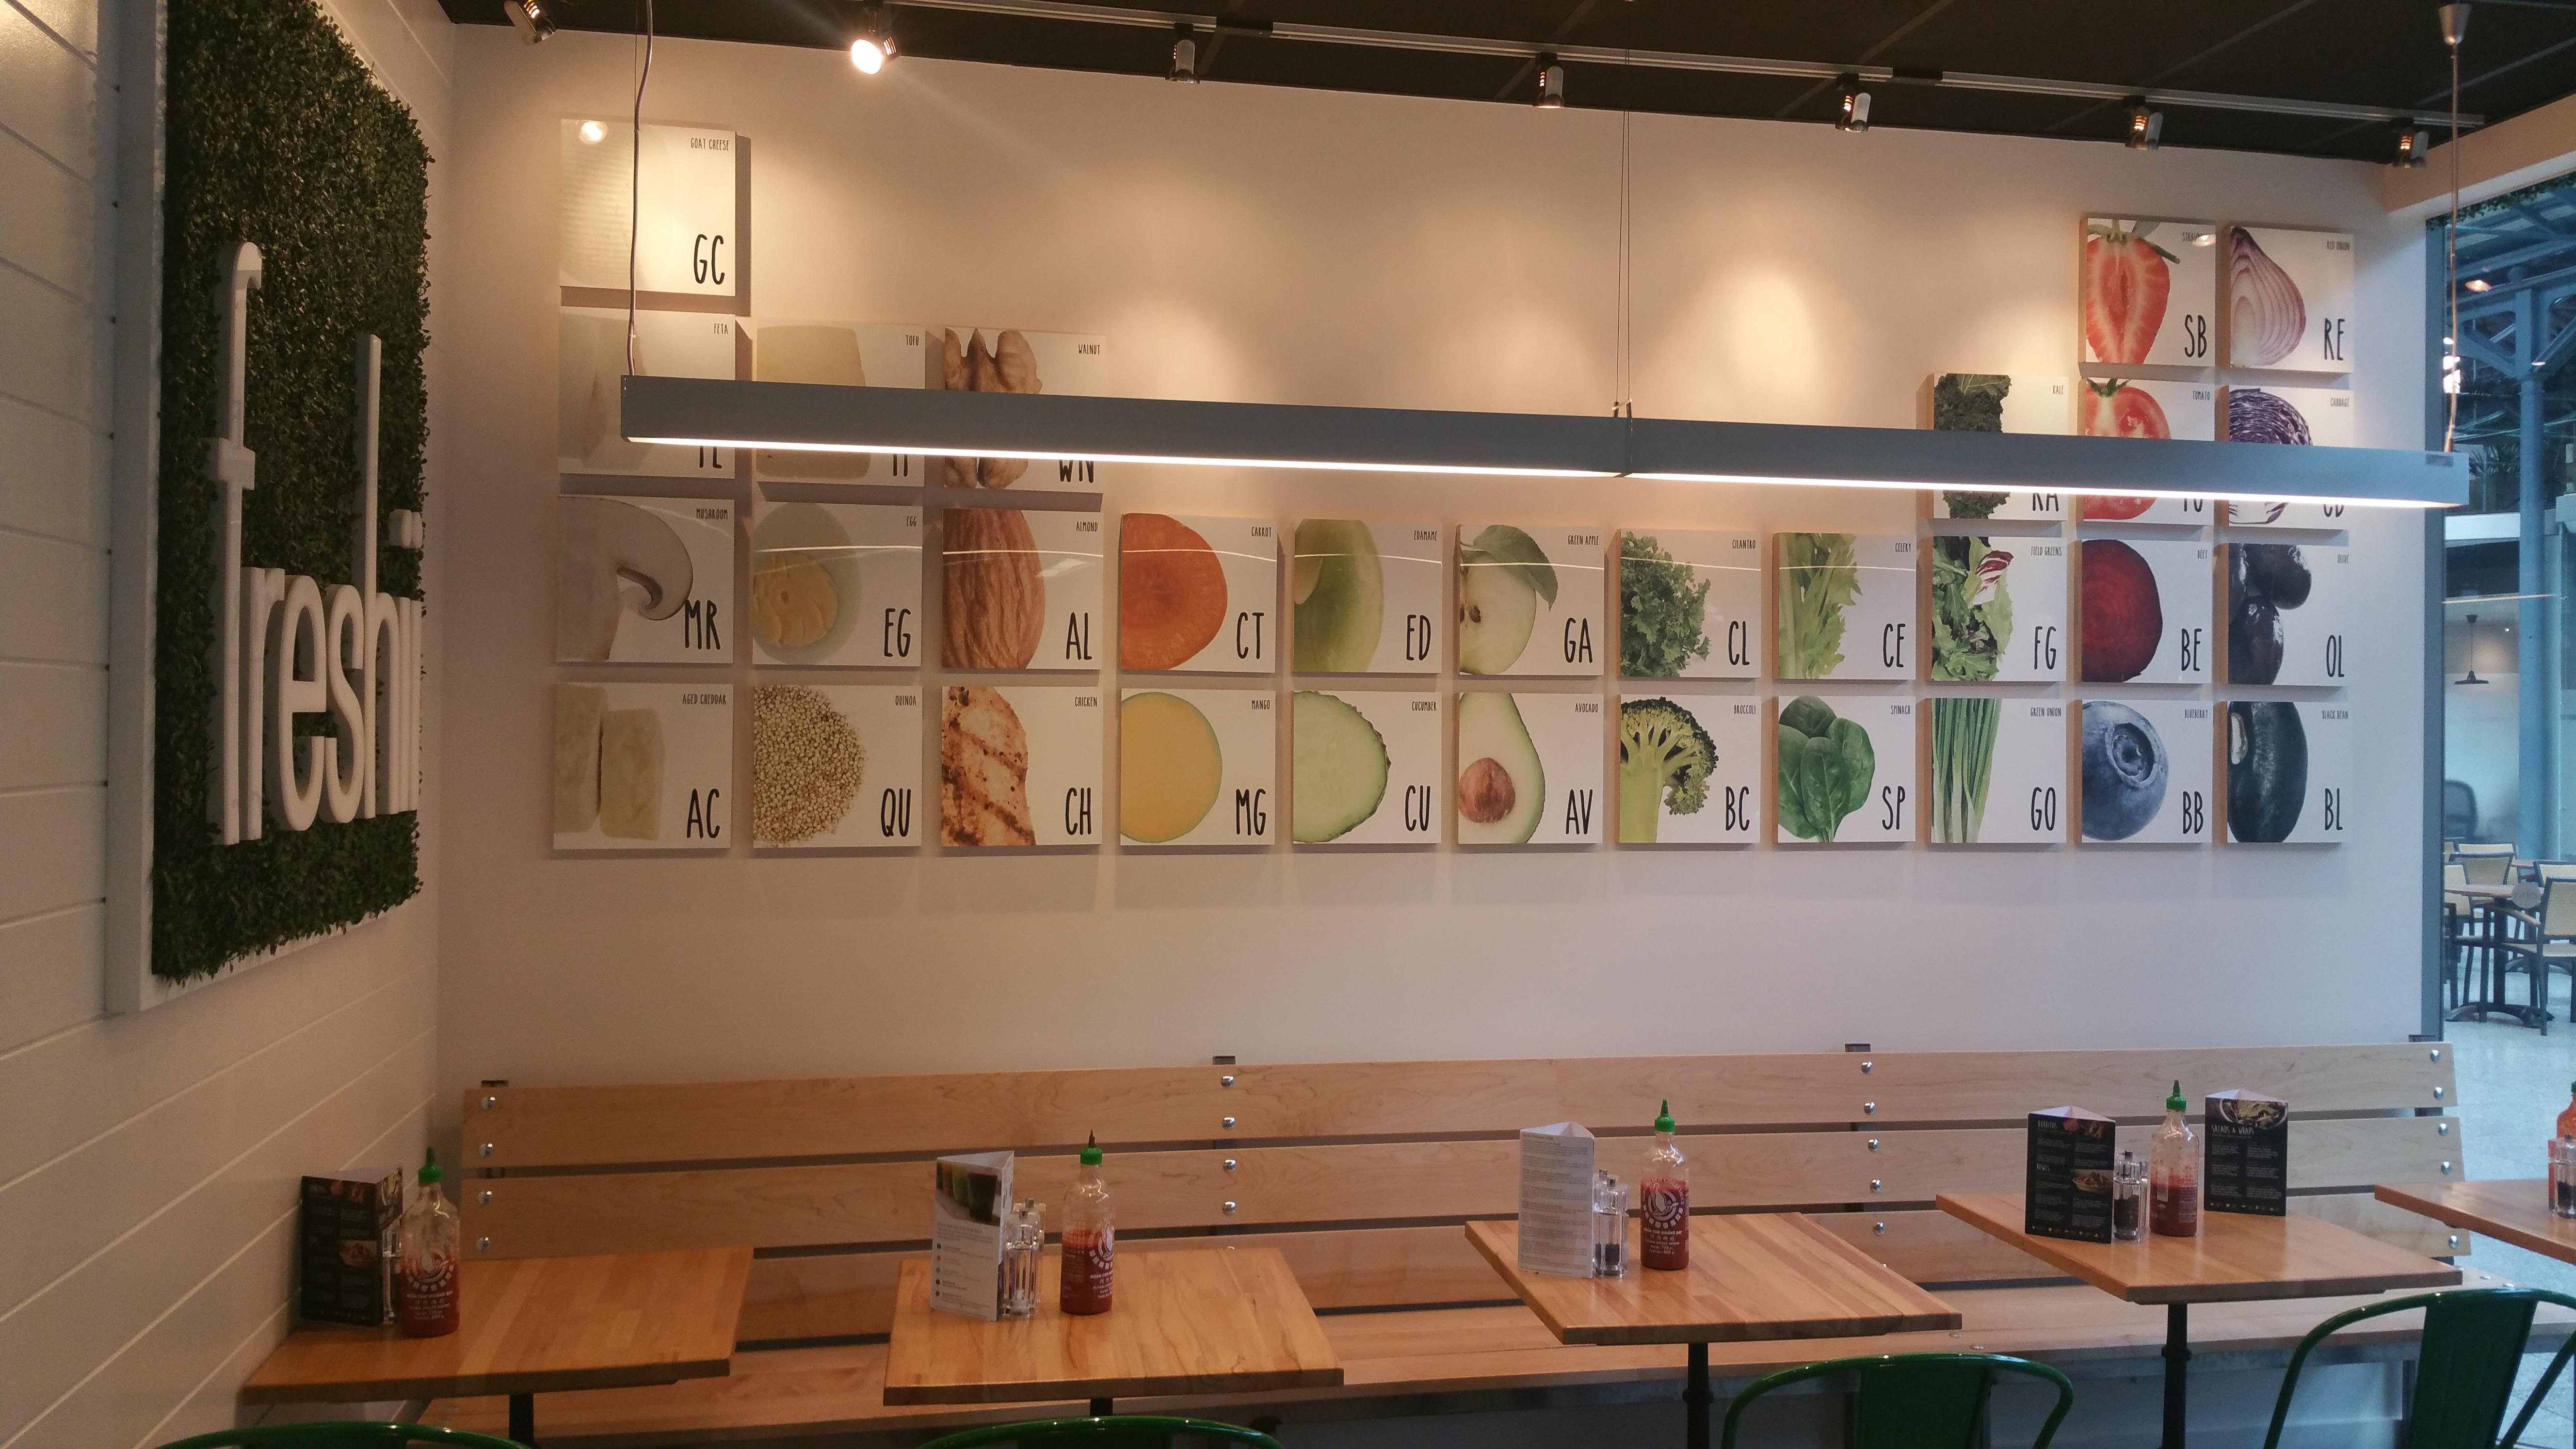 VIew of seating area of Freshii Restaurant